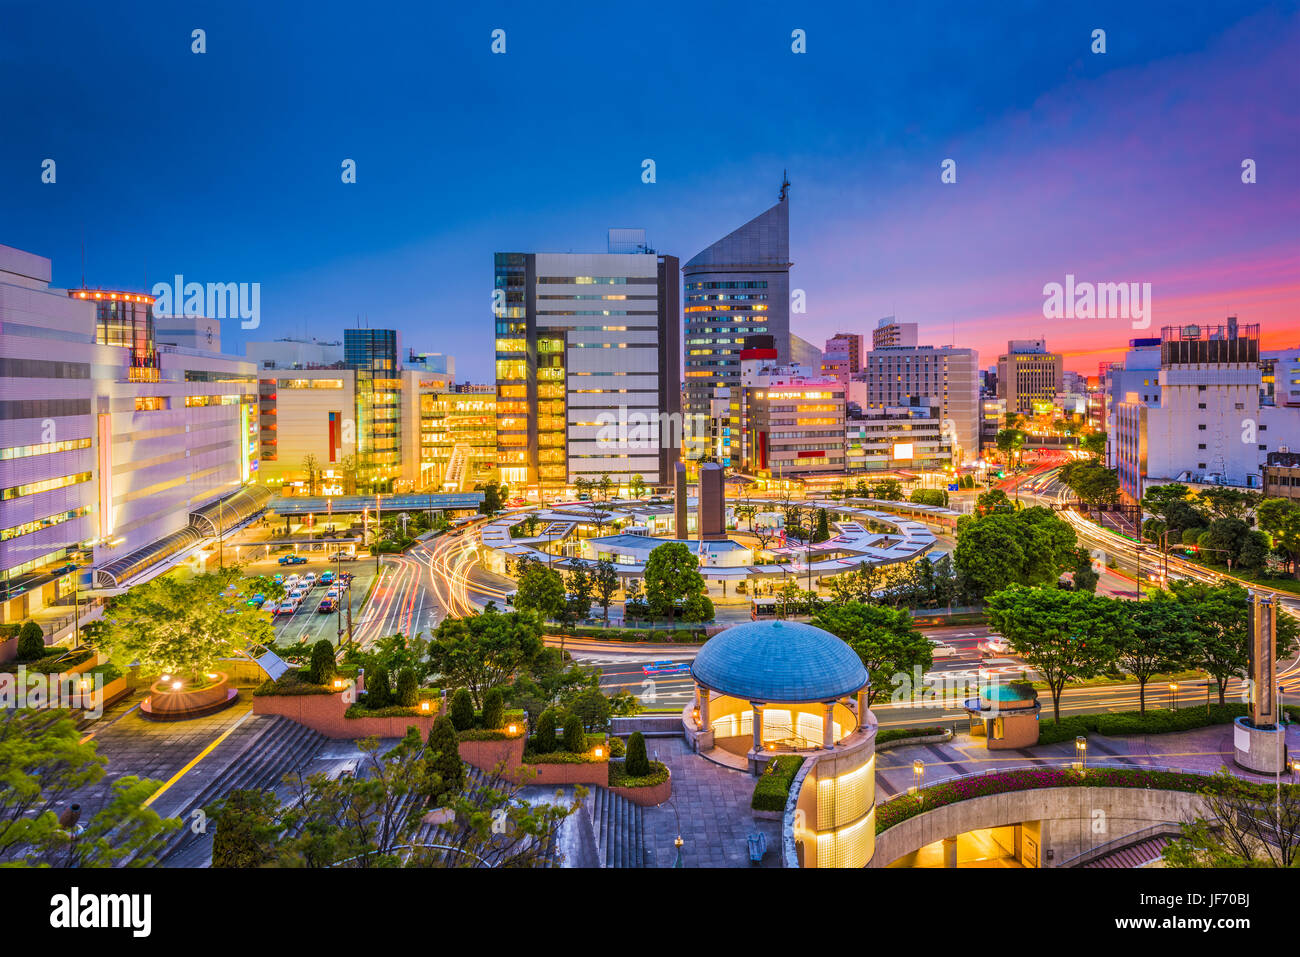 Hamamatsu City, Japan skyline at twilight. - Stock Image